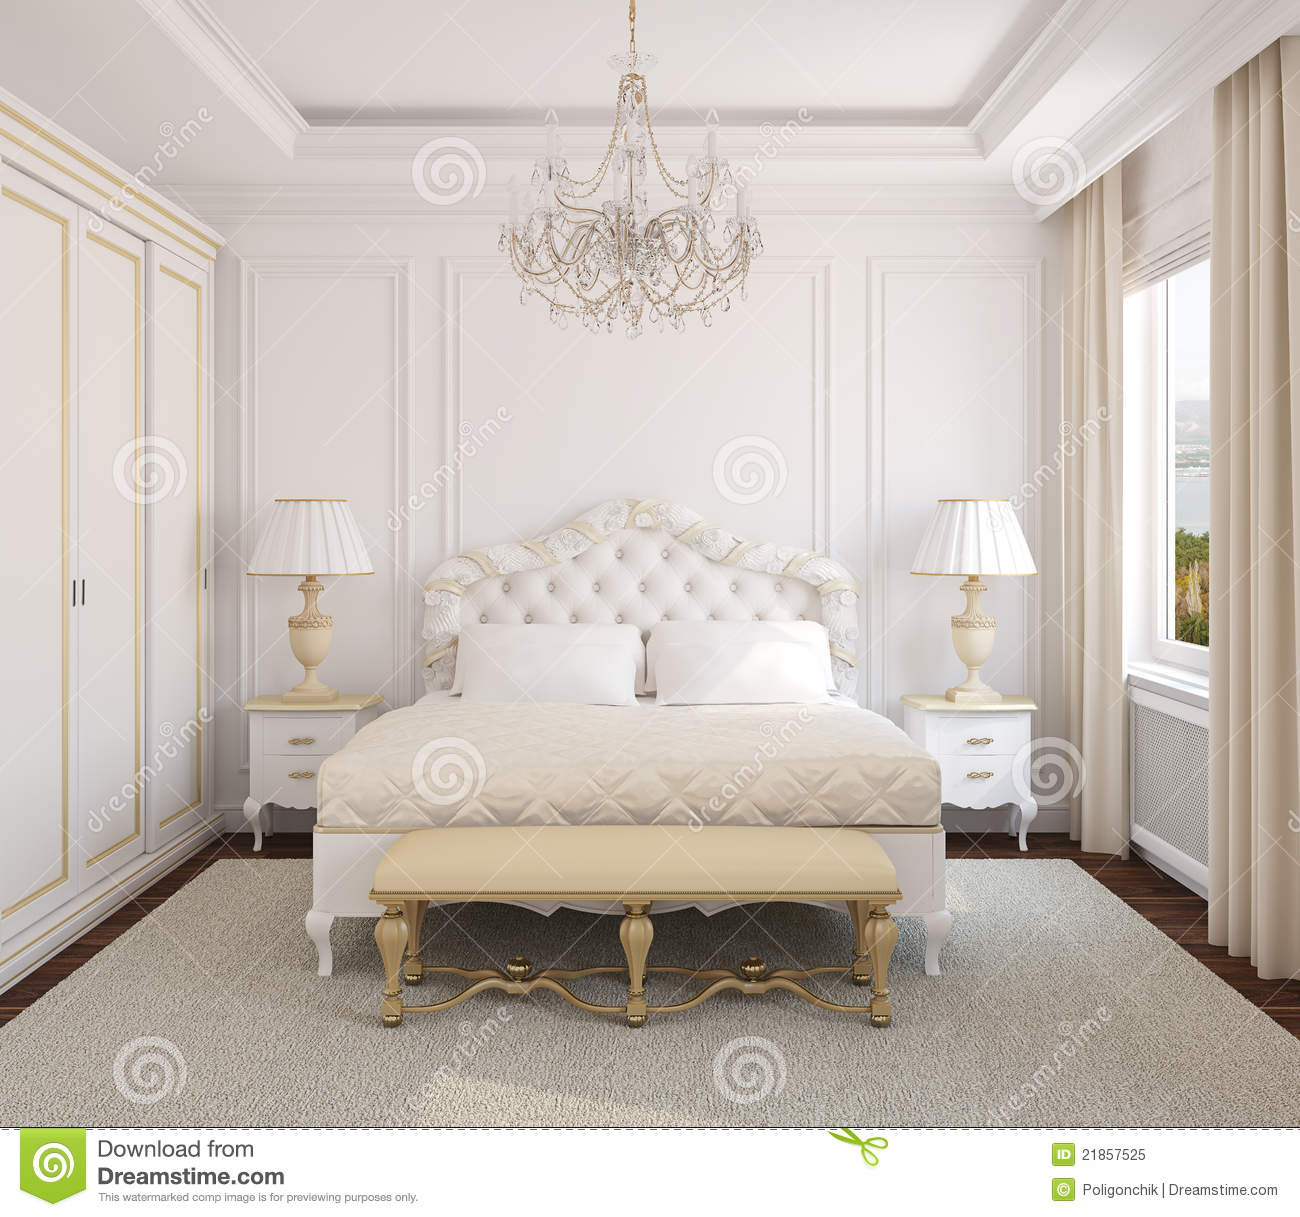 Classic Bedroom Interior Royalty Free Stock Image